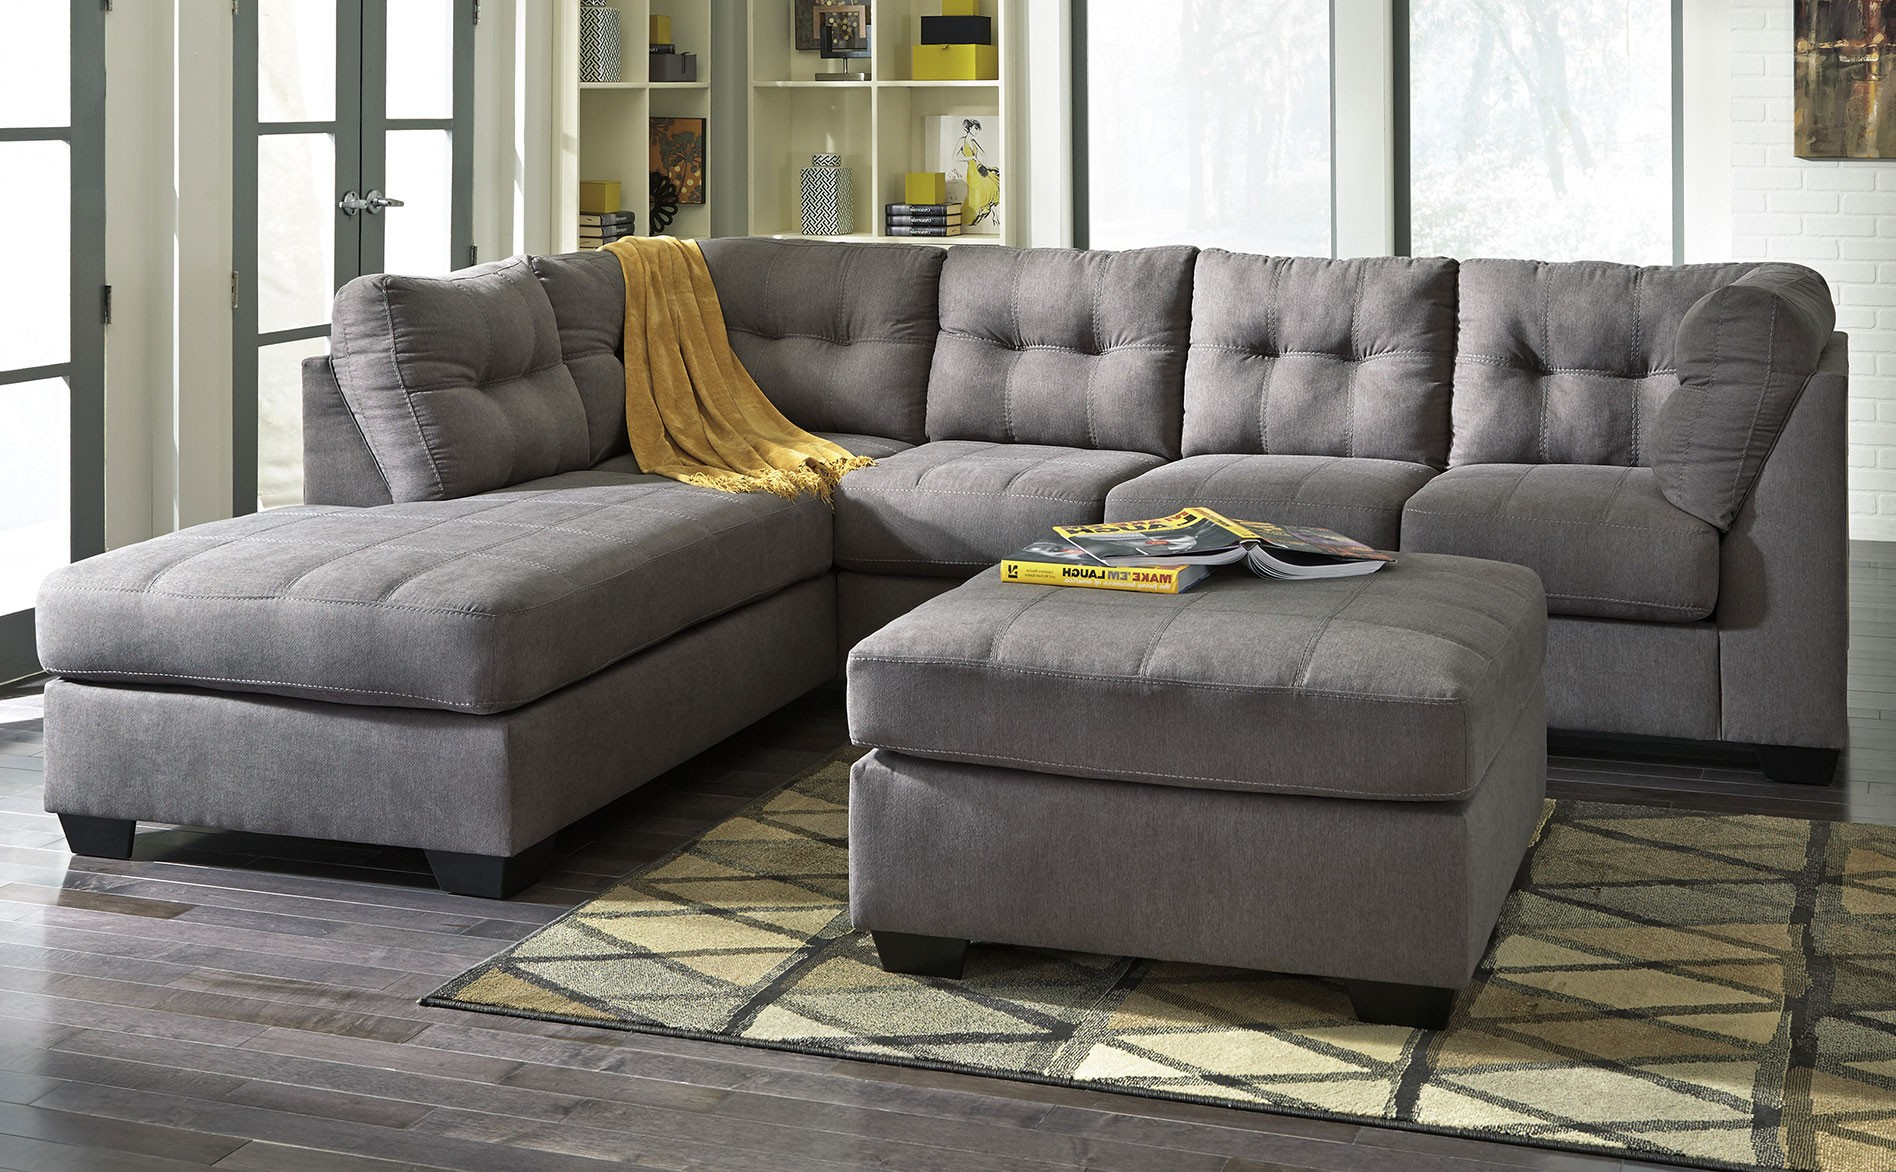 Signature Design Maier 2-Piece Chaise Sectional - Charcoal